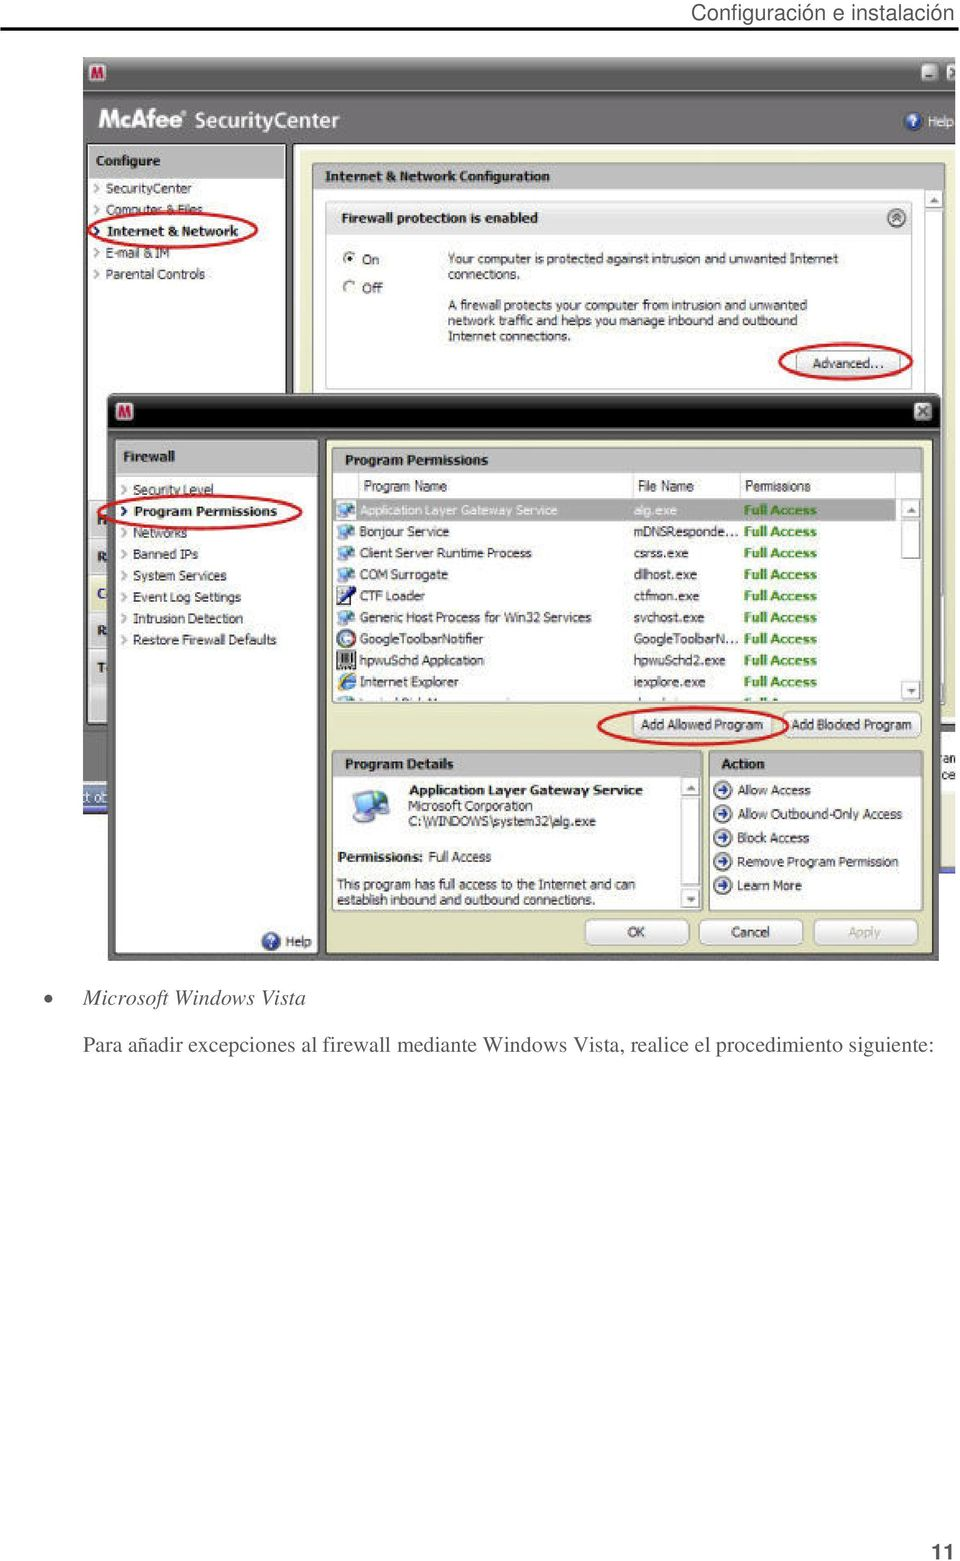 al firewall mediante Windows Vista,